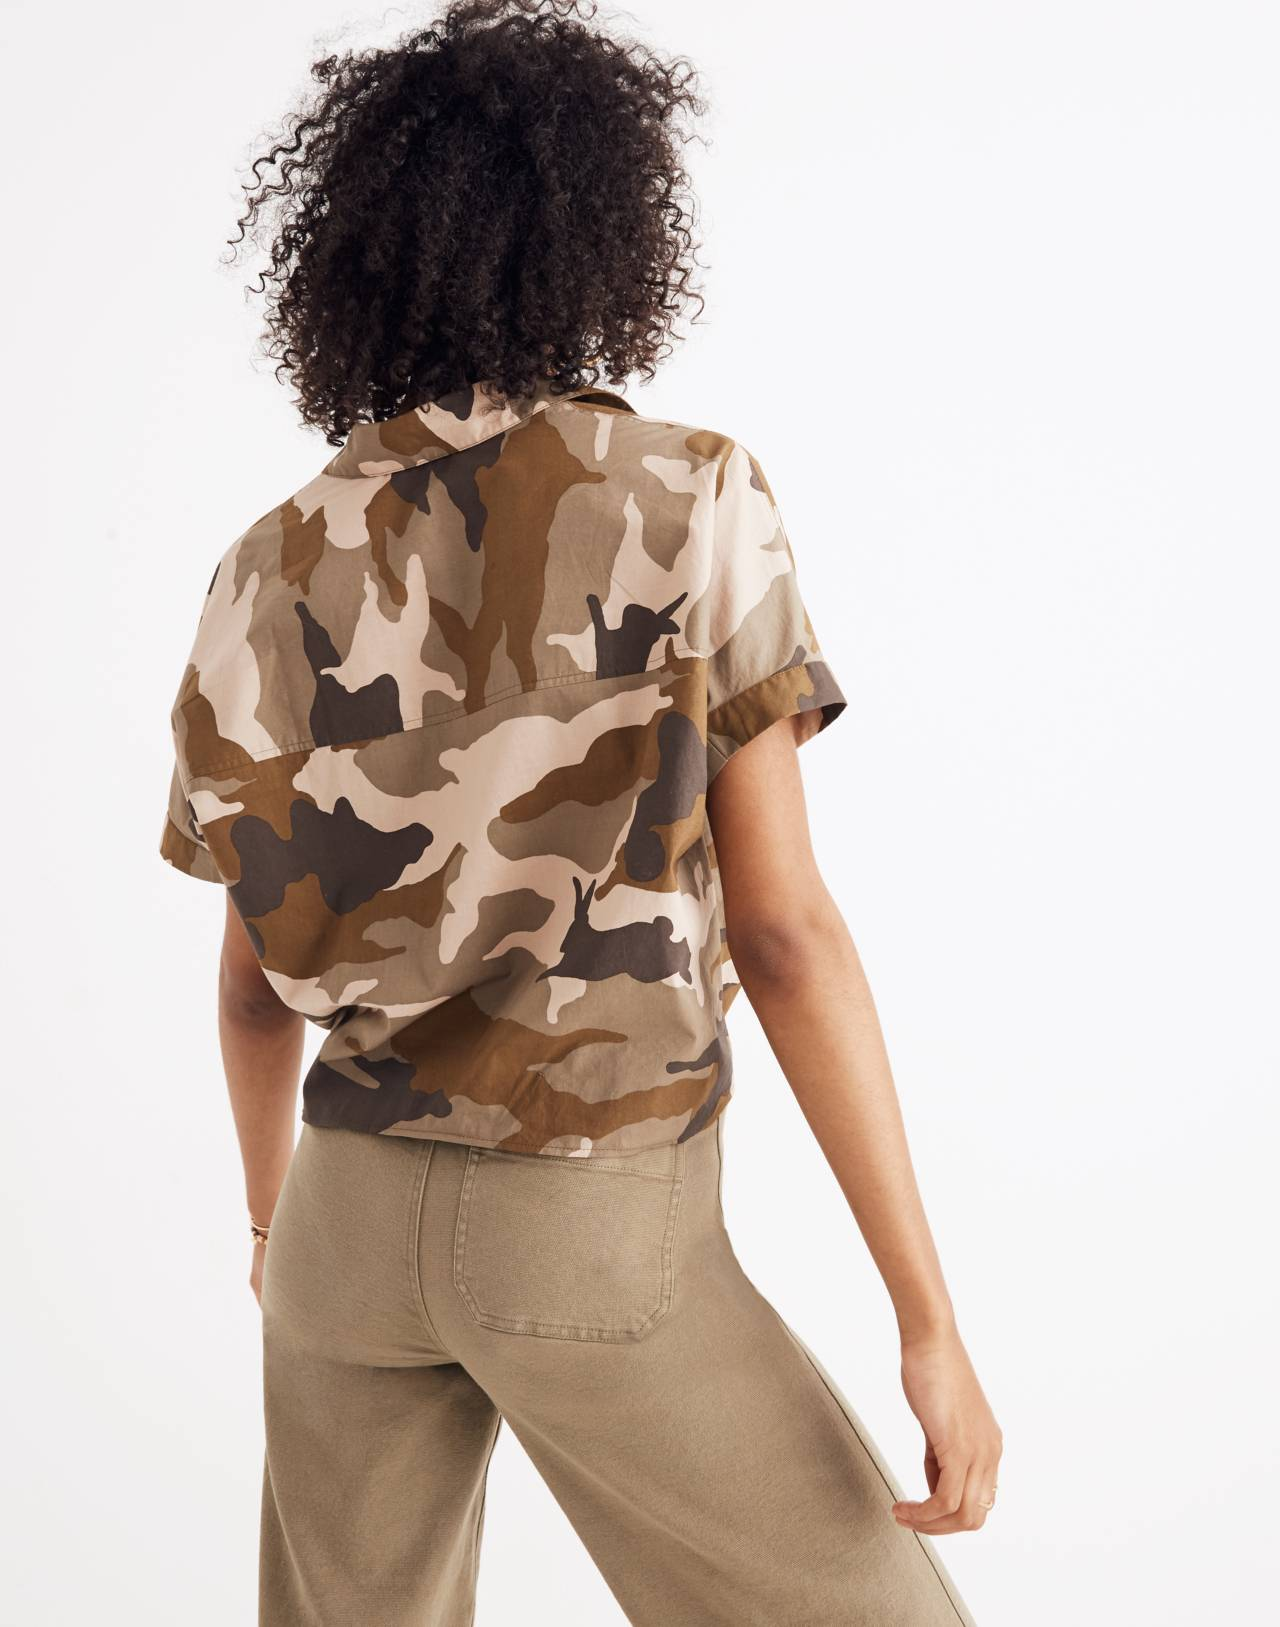 Short-Sleeve Tie-Front Shirt in Cottontail Camo in bunny camo asparagus image 3